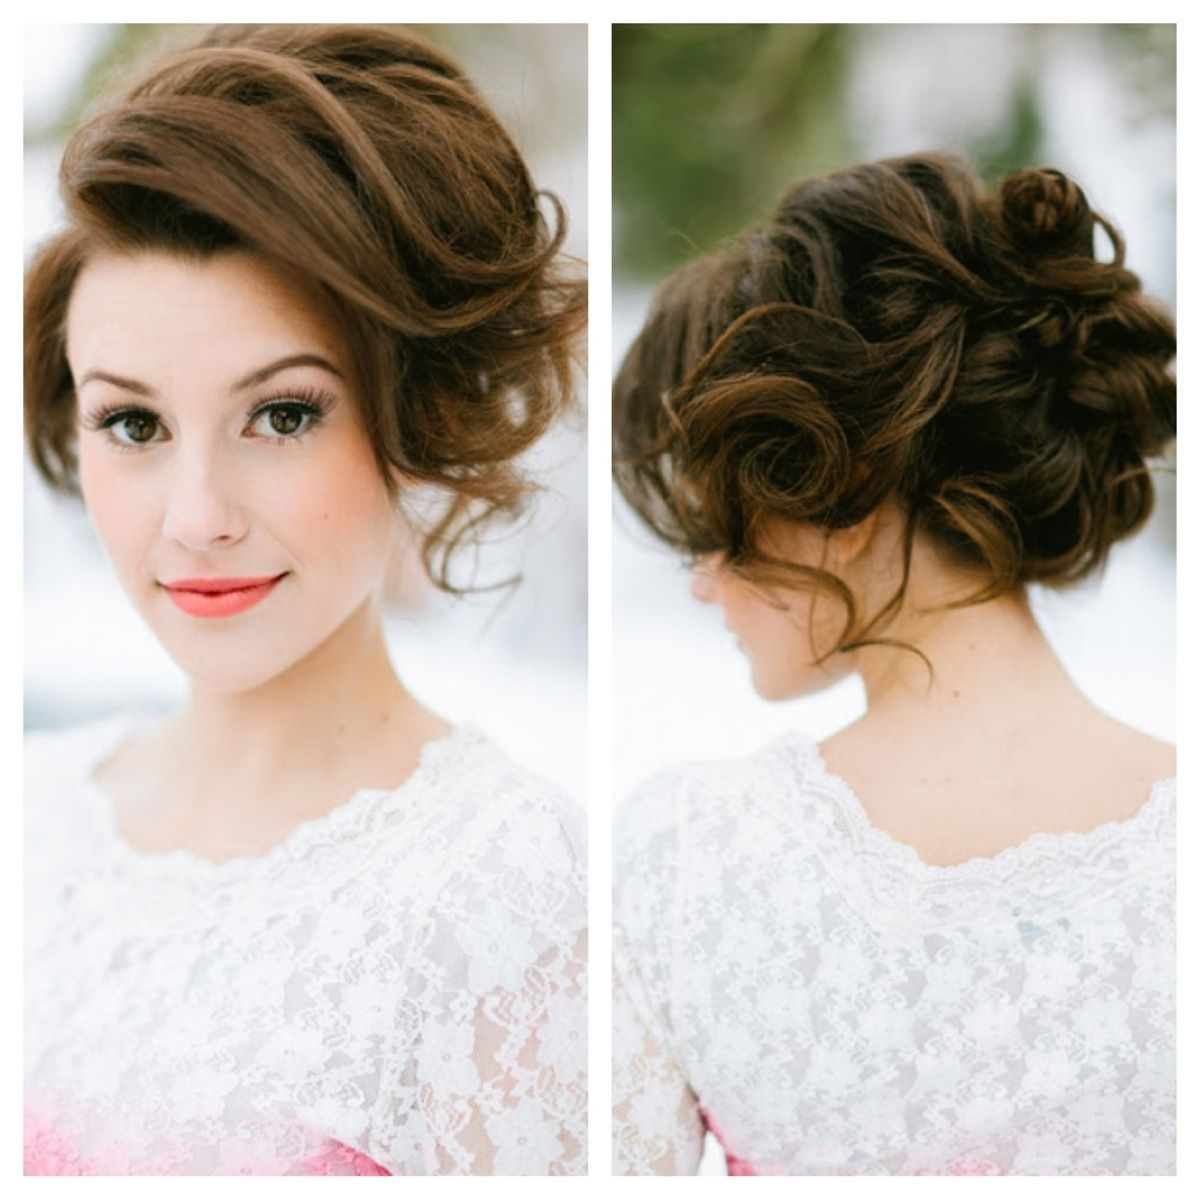 bridesmaid hair and makeup | updo on braids | wedding